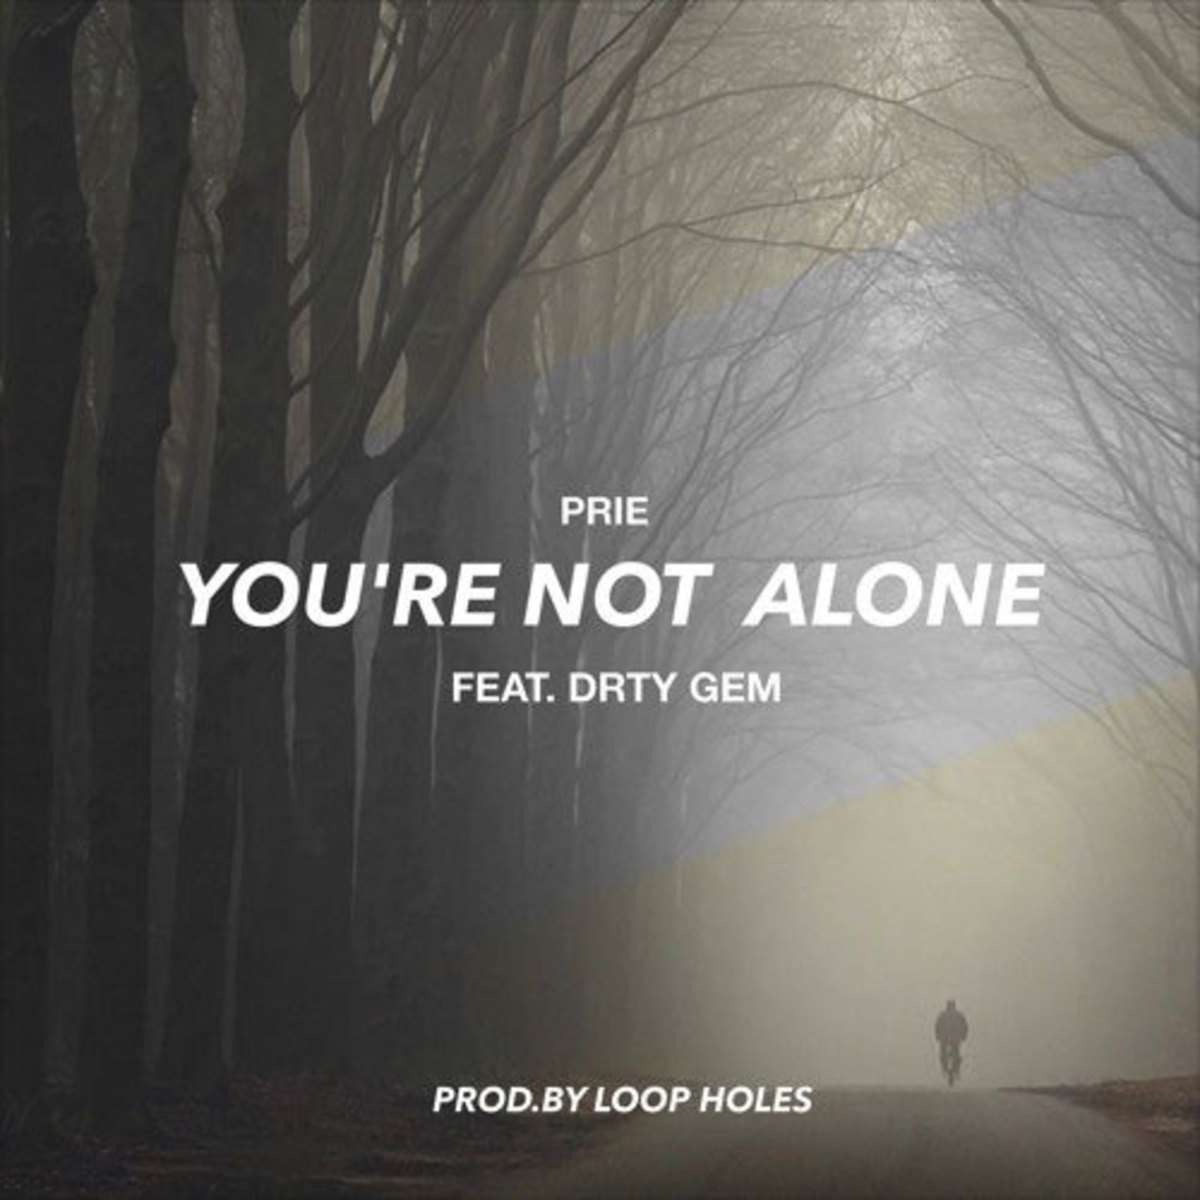 prie-youre-not-alone.jpg